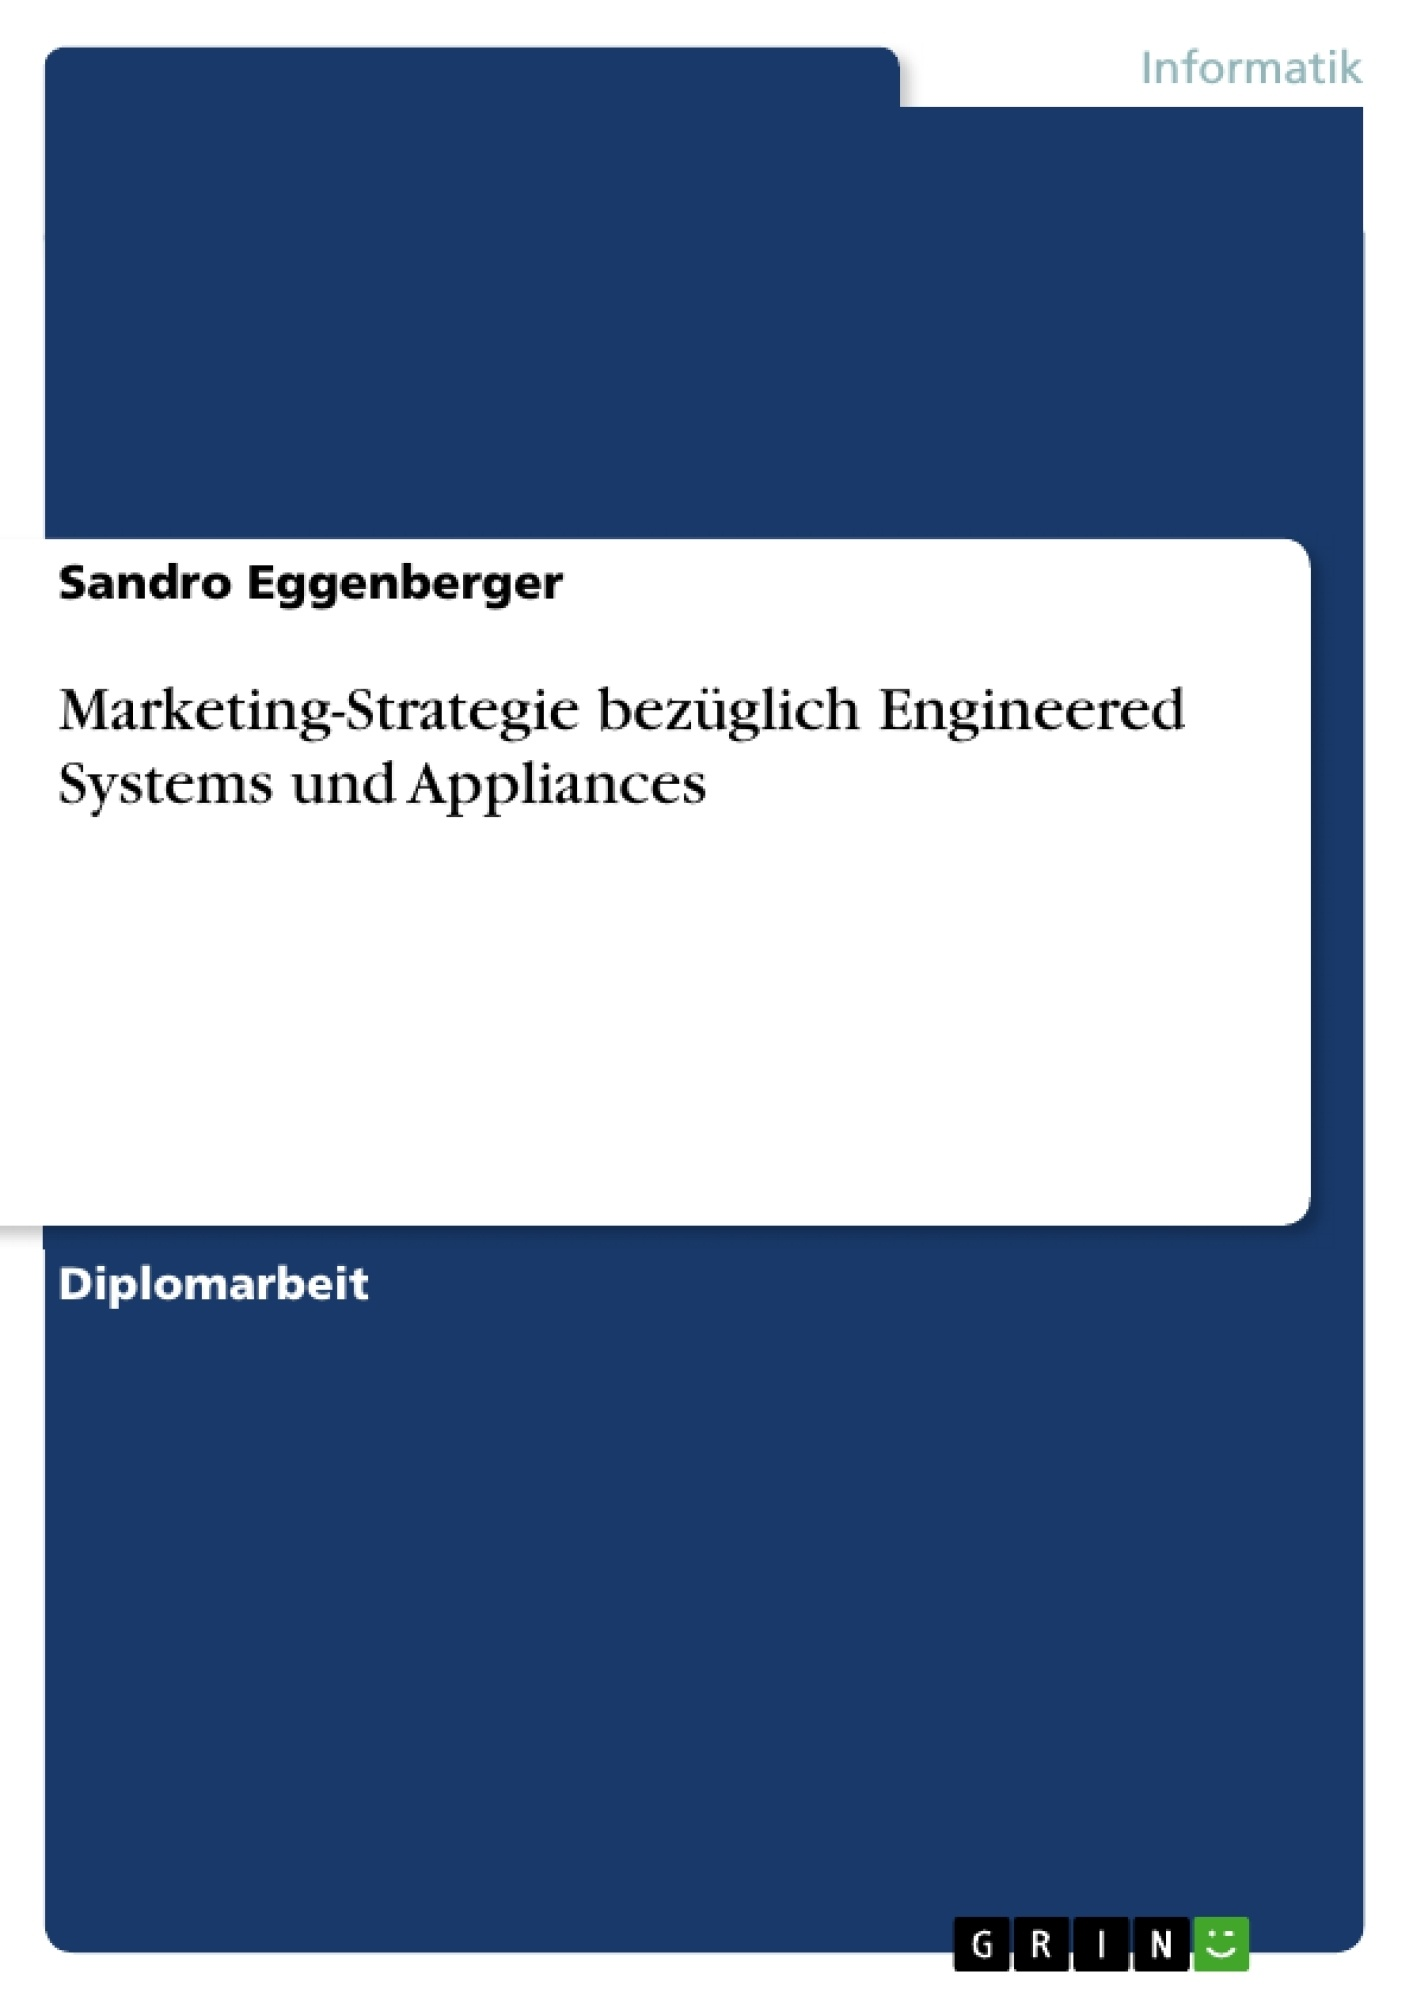 Titel: Marketing-Strategie bezüglich Engineered Systems und Appliances